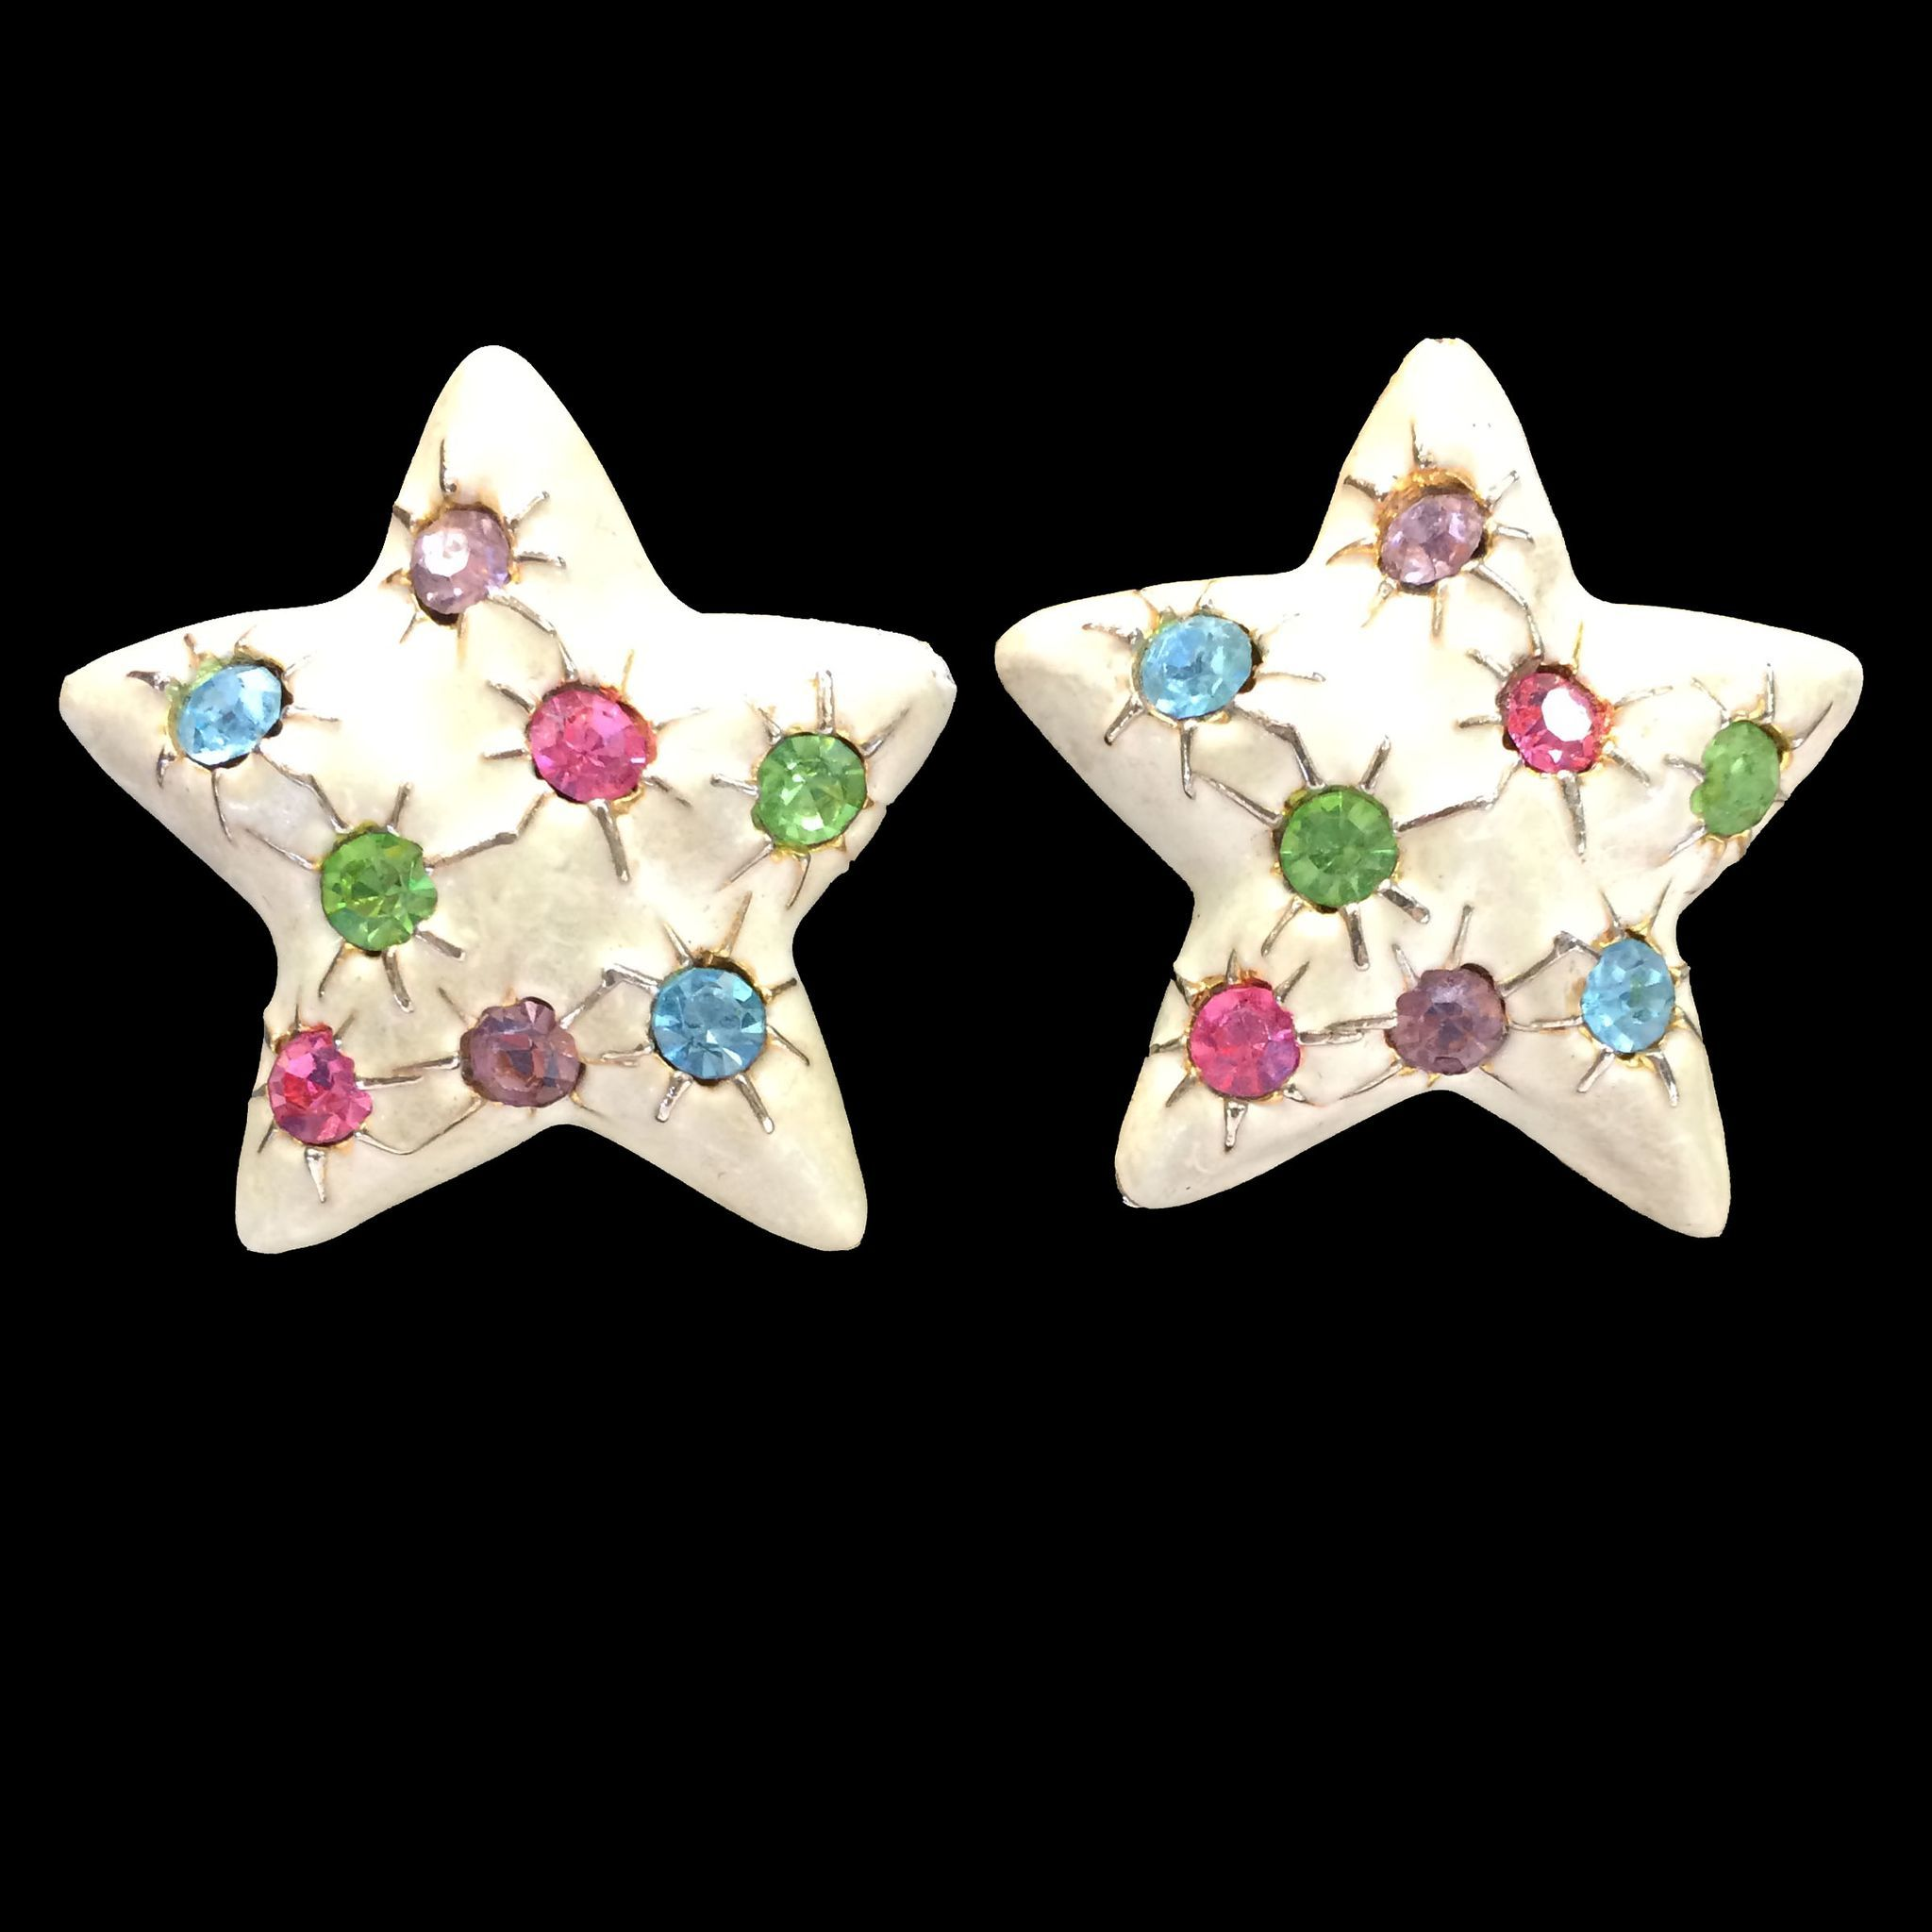 Cream Enamel Starfish Earrings with Multi Pastel Rhinestones